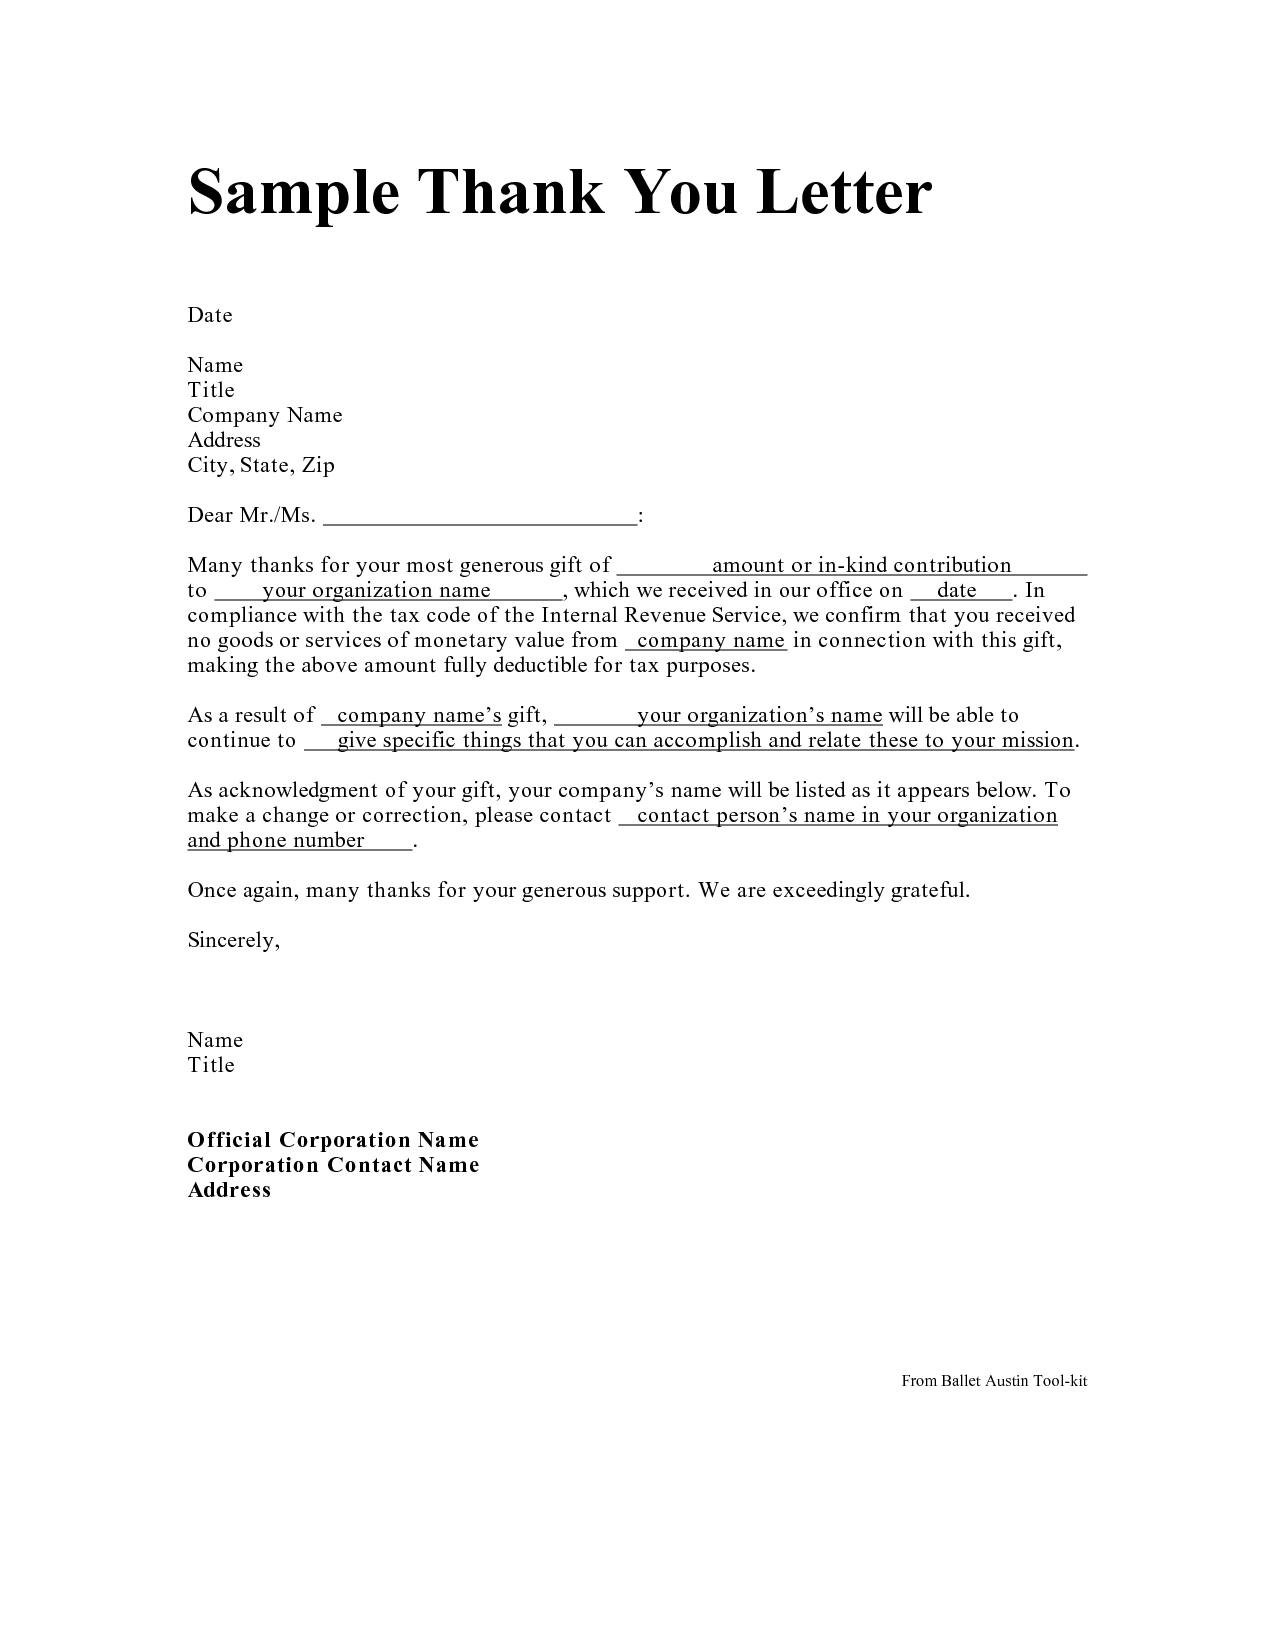 Non Profit Donation Thank You Letter Template - Personal Thank You Letter Personal Thank You Letter Samples